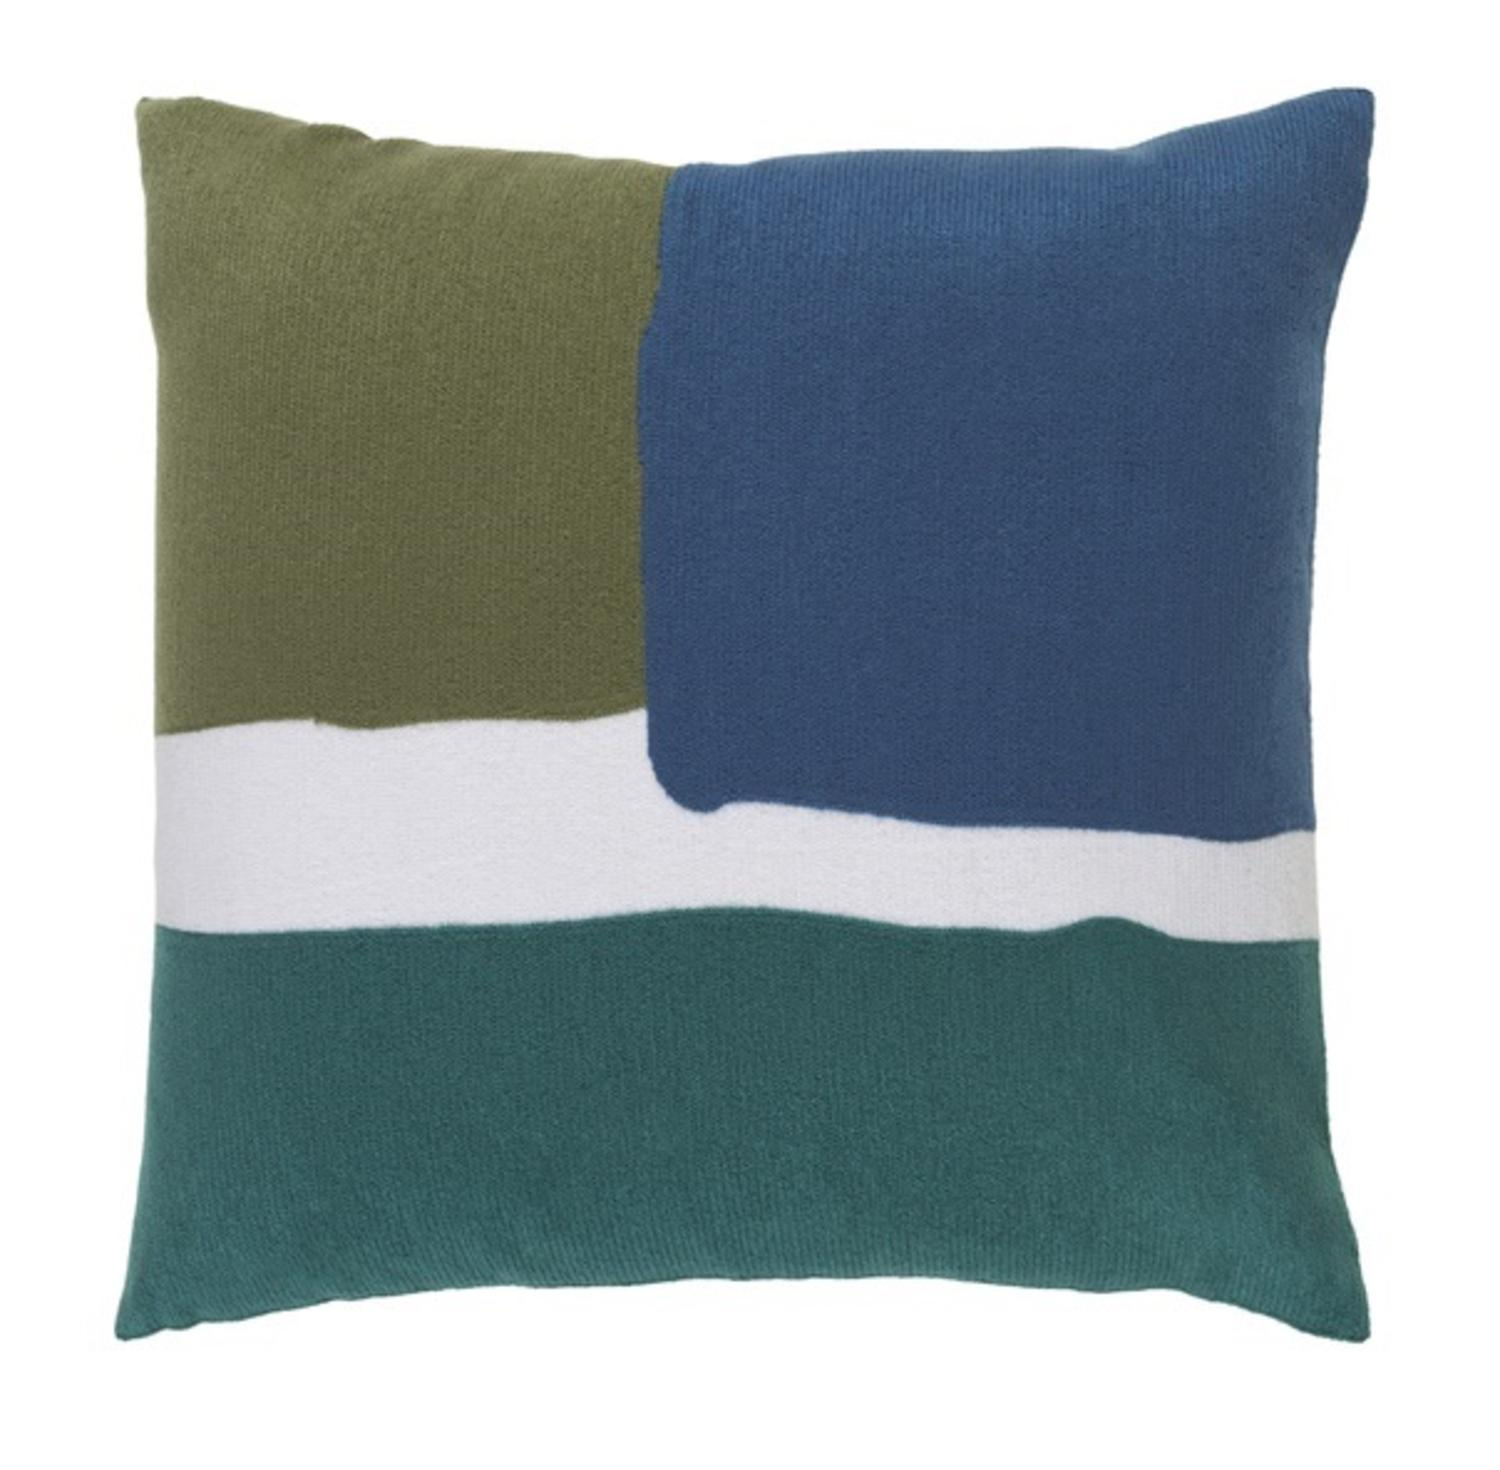 18? Turquoise and Navy Blue, Olive Green and White Decorative Throw Pillow - Tanga